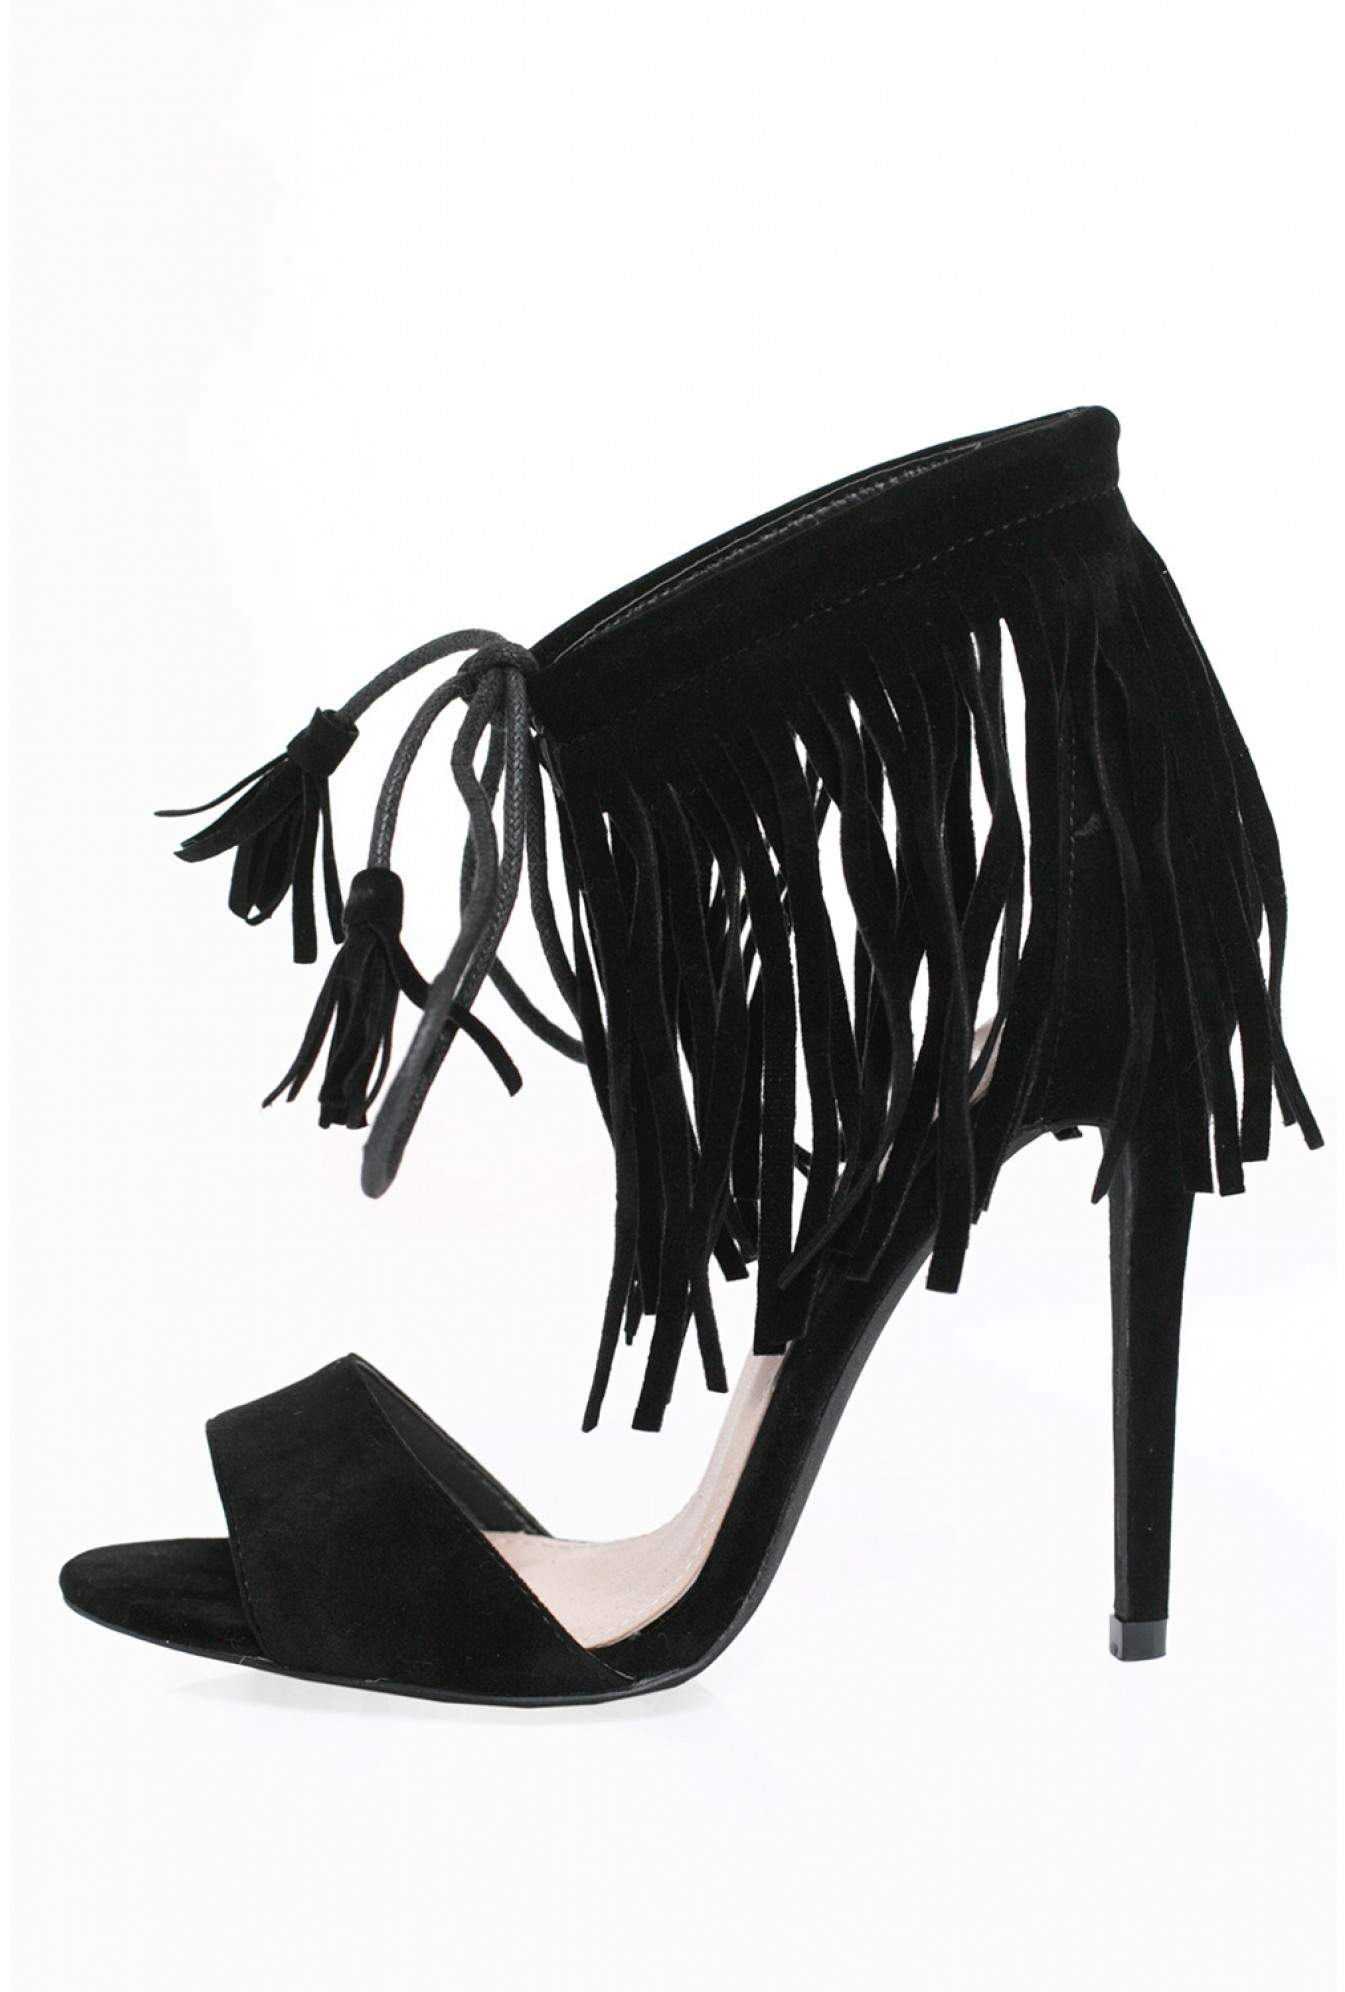 4c1908e019c Indigo Footwear Noella Fringe Heeled Sandals in Black